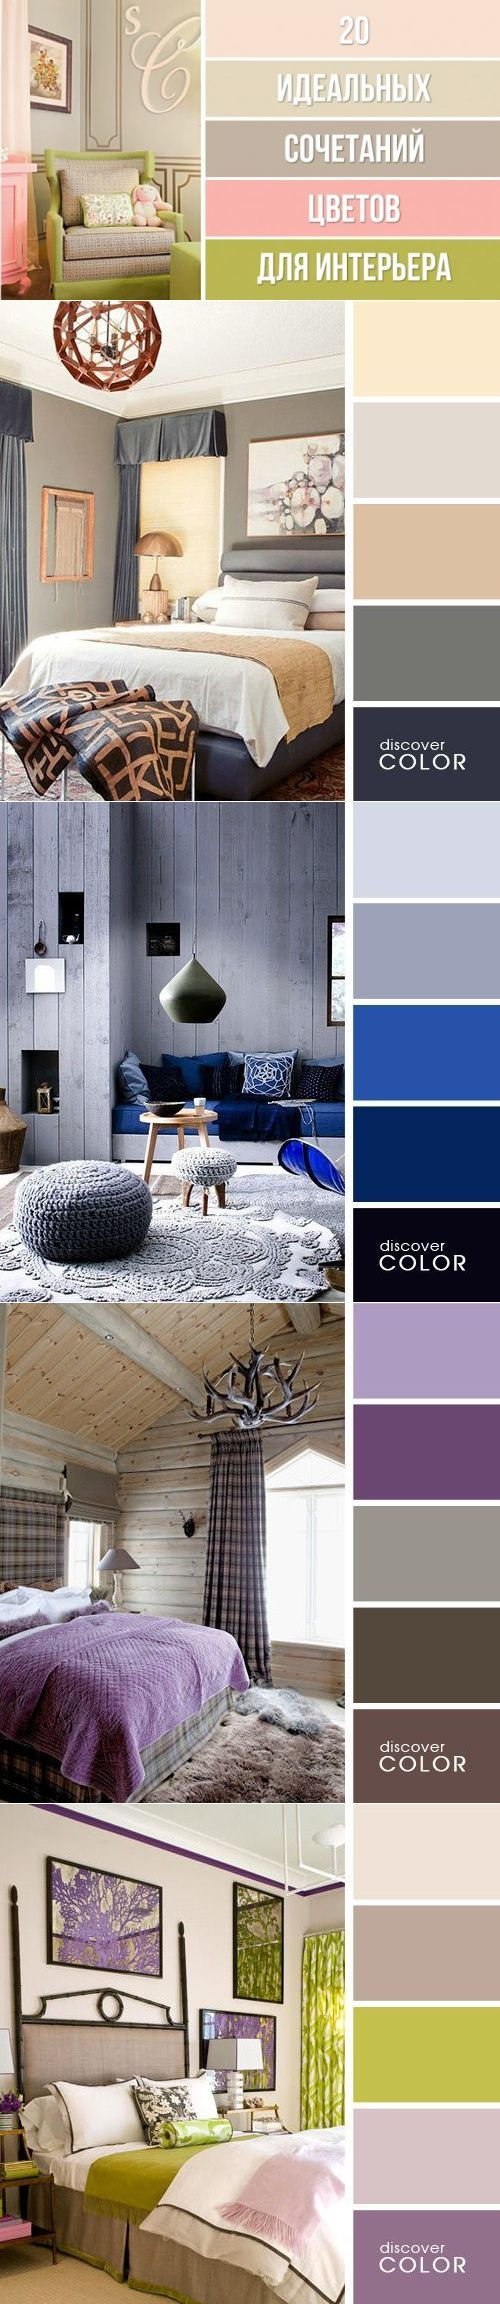 20 perfect combination of colors for interior design / For women